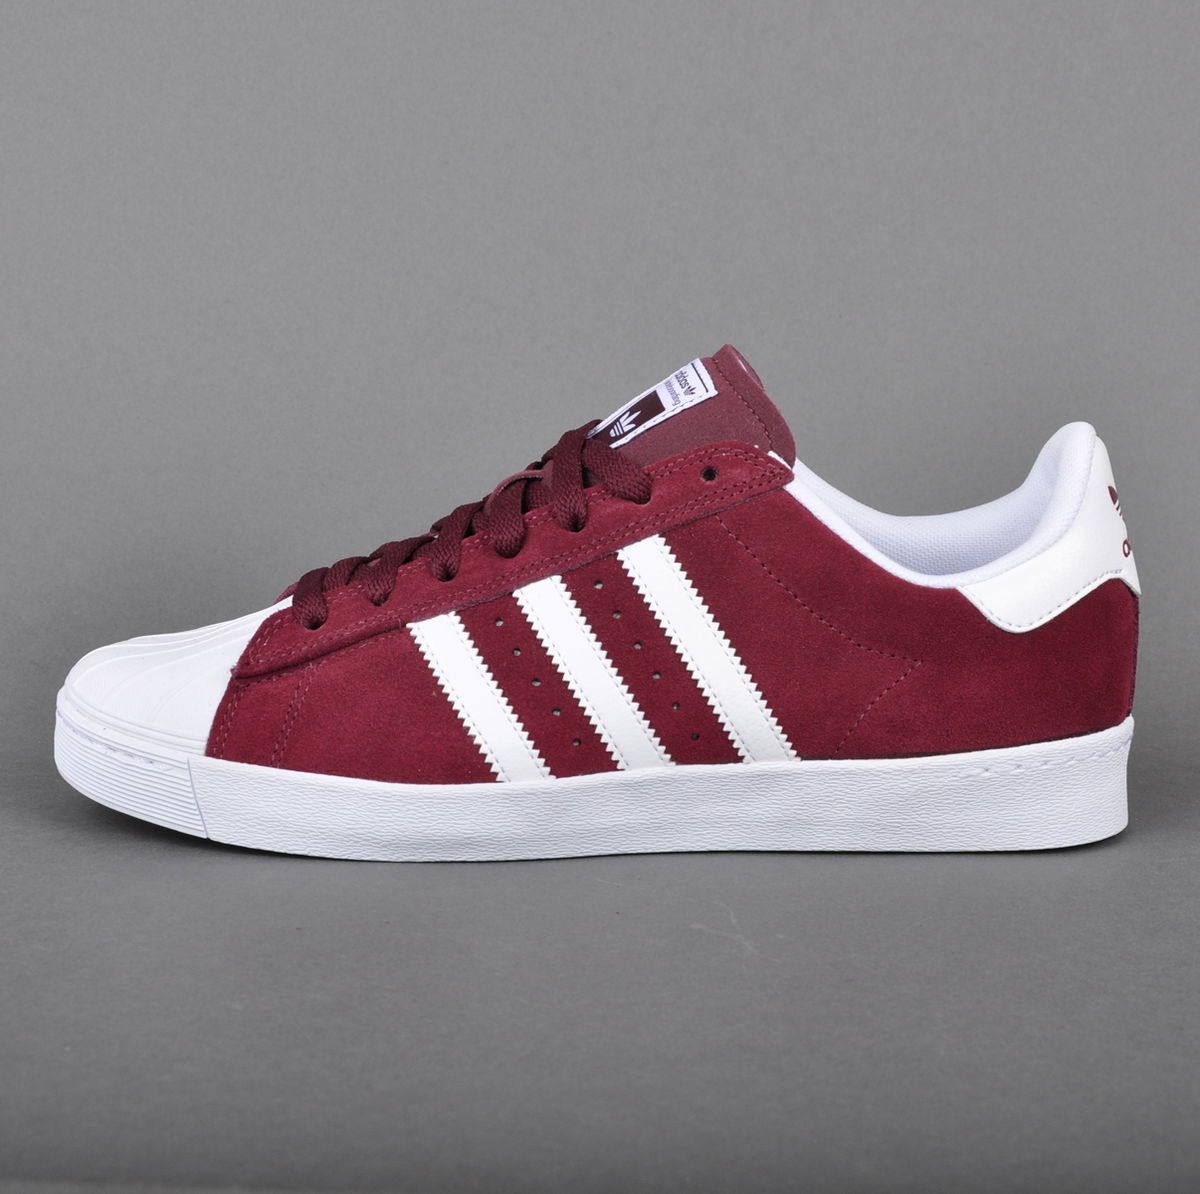 Buy Vulc Shoes 2018 Online Adidas Superstar Adv Cheap Sale dxBoCe